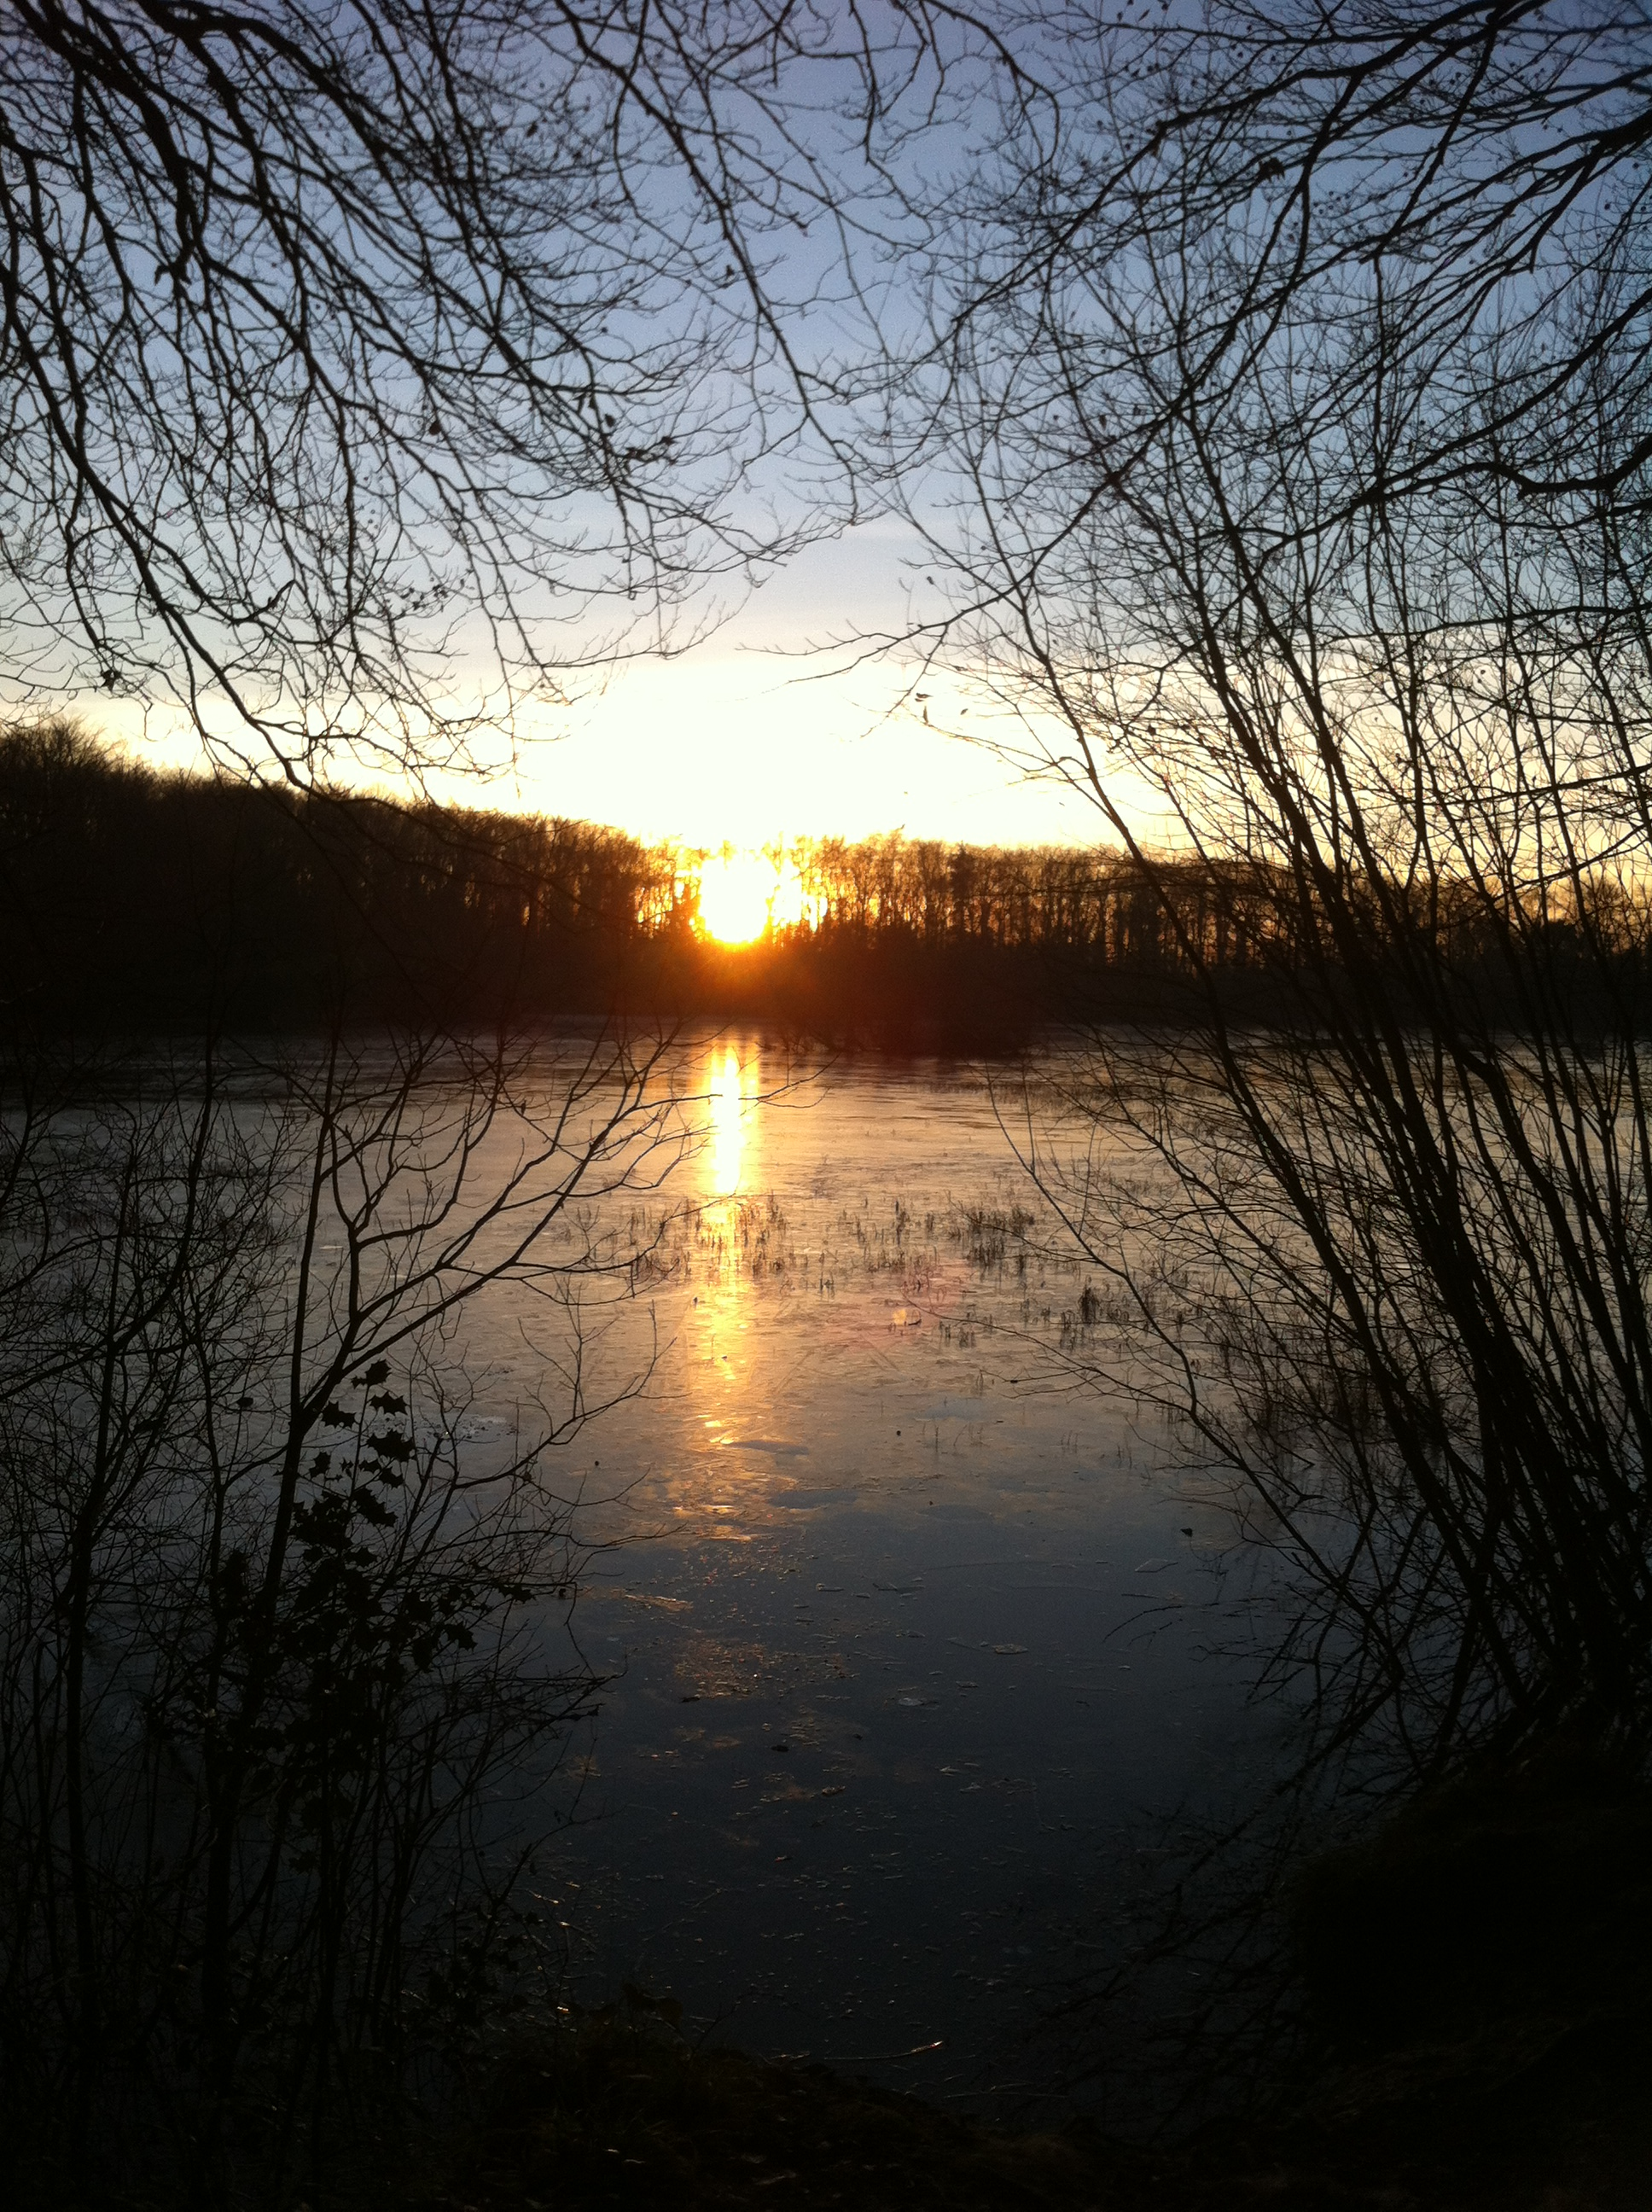 Sunset, frozen lake